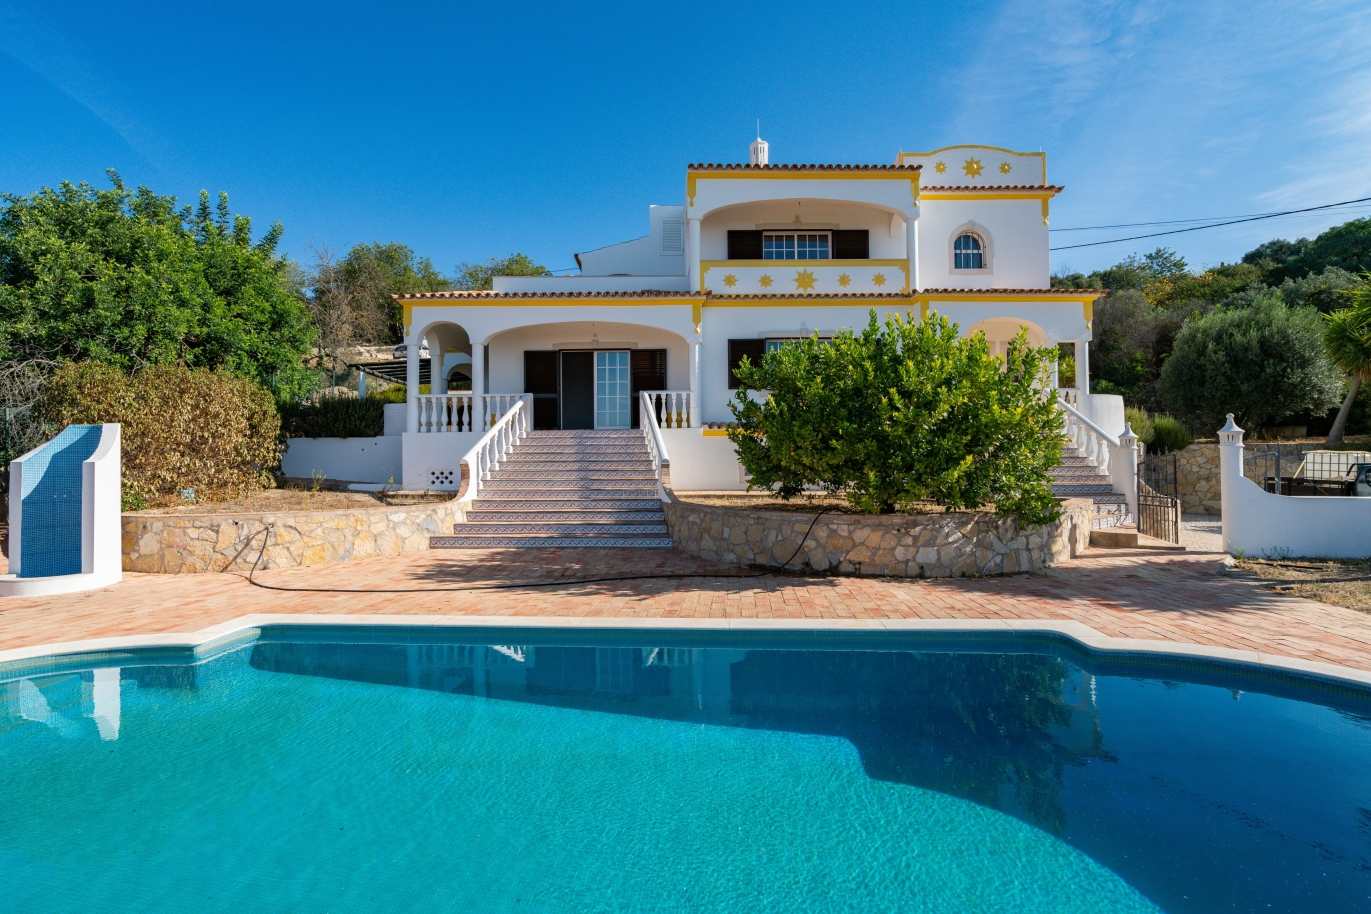 villa-with-4-bedrooms-swimming-pool-and-sea-view-boliqueime-algarve